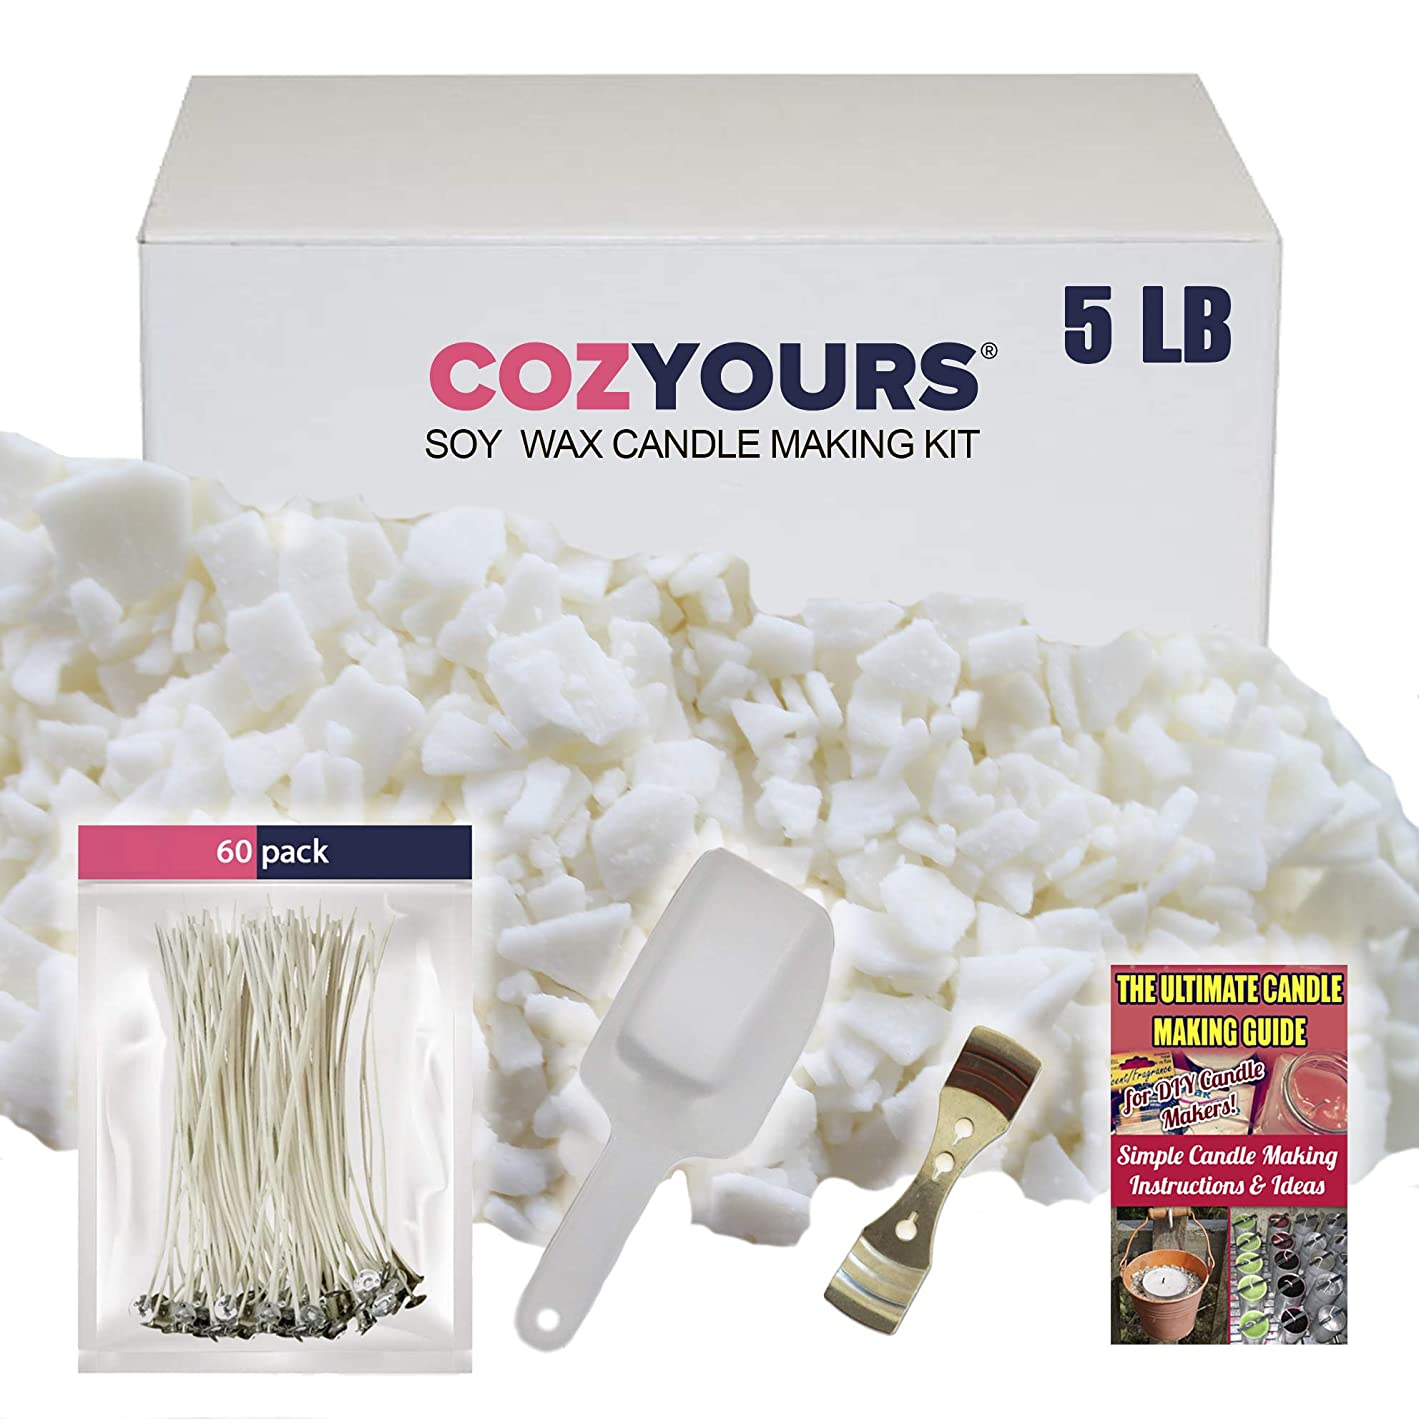 Cozyours DIY Candle Making Kit Supplies: Natural Soy Wax 5 Lb, 60 Candle Wicks,1 Wick Centering Device and 1 Scoop; Ultimate Candle Making Guide E-Book Included! x42439777494998